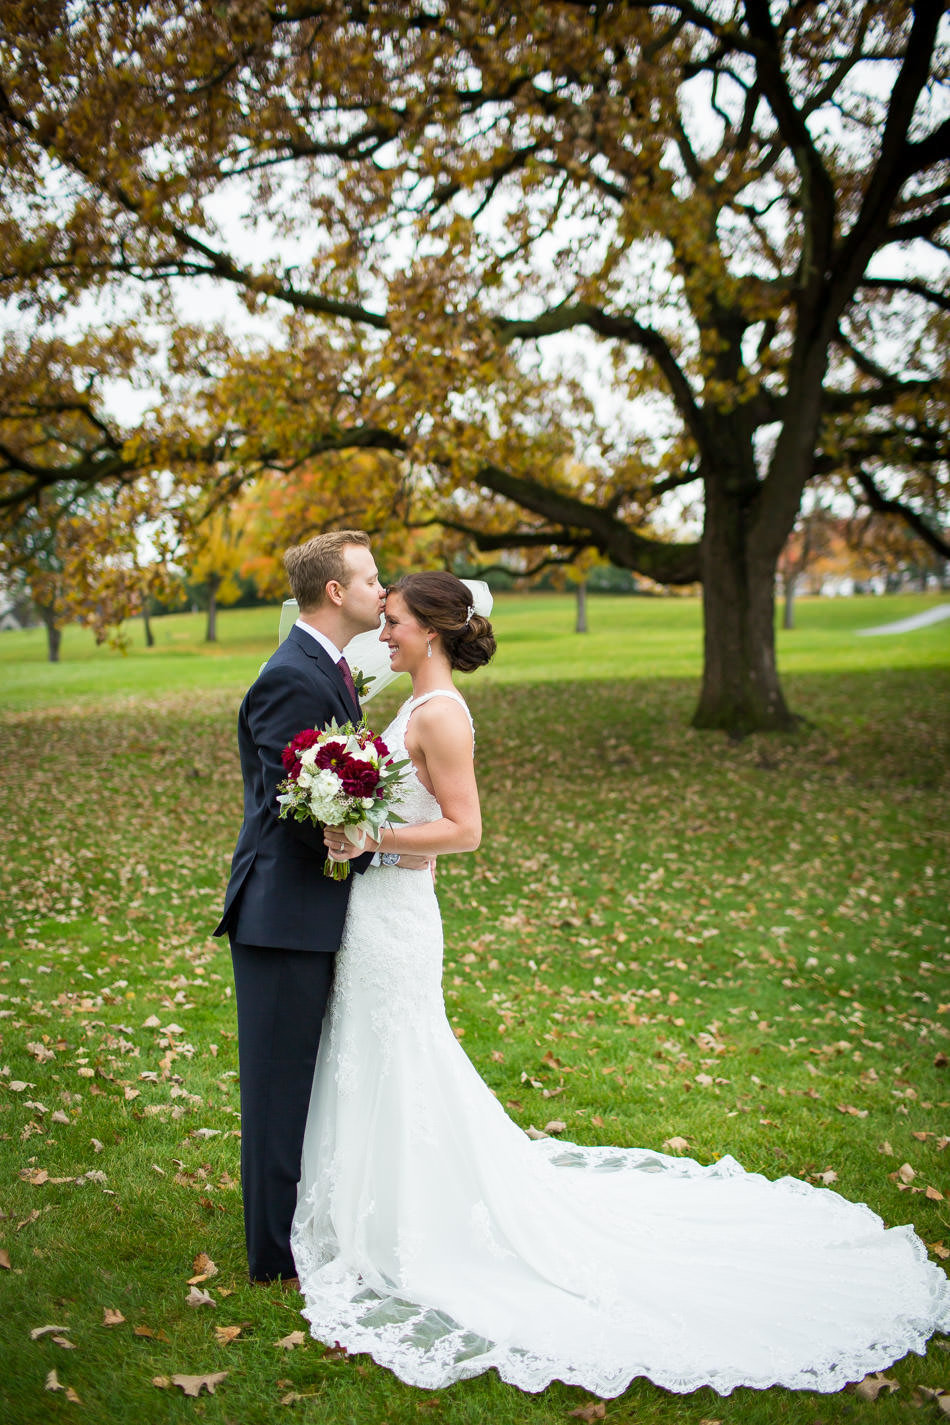 Twin Cities Wedding Photographer - Jack & Margeaux (30)